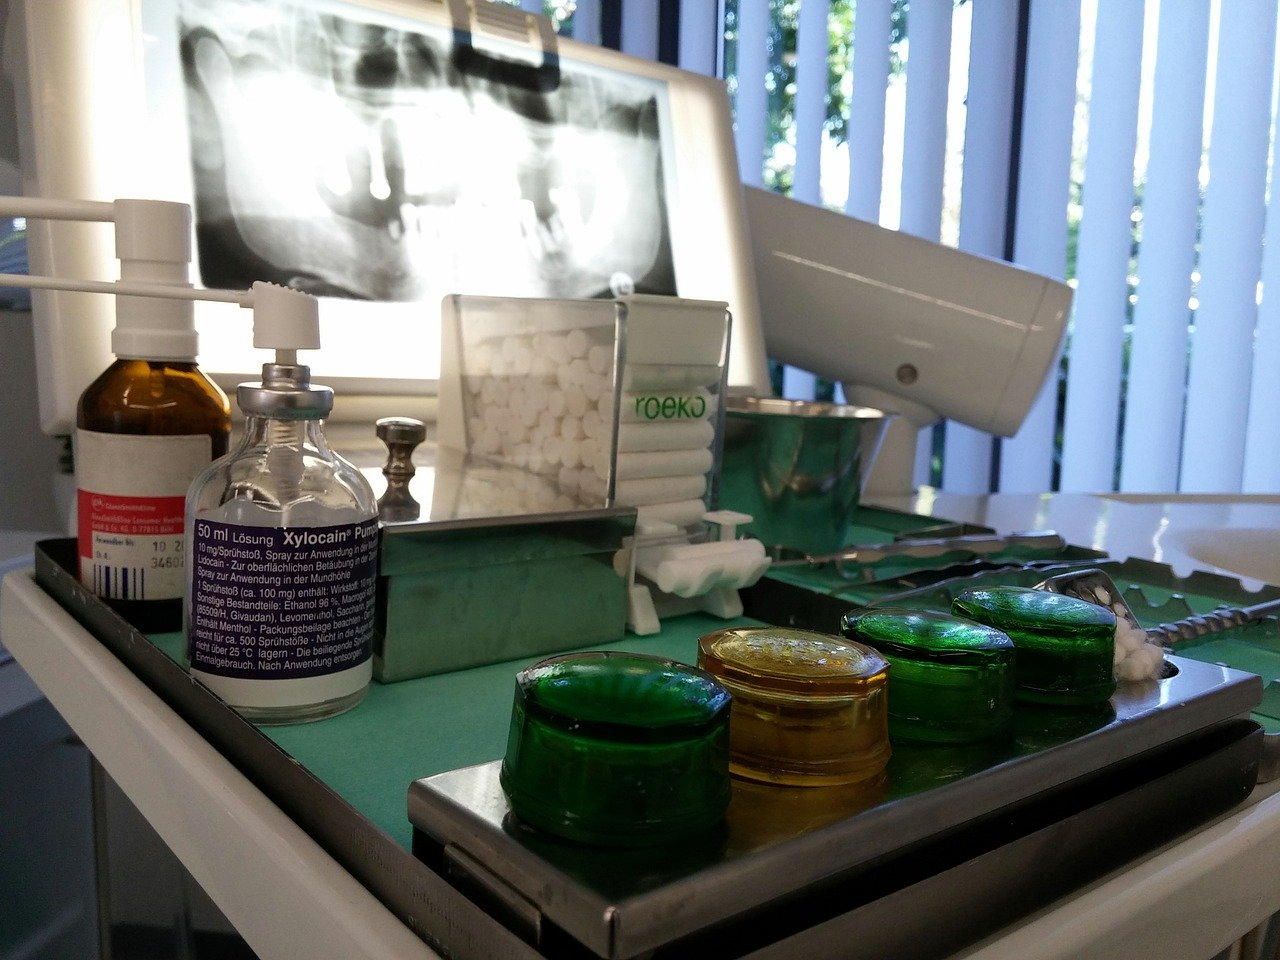 Dentist table filled with equipment, including an x-ray picture and cotton swabs